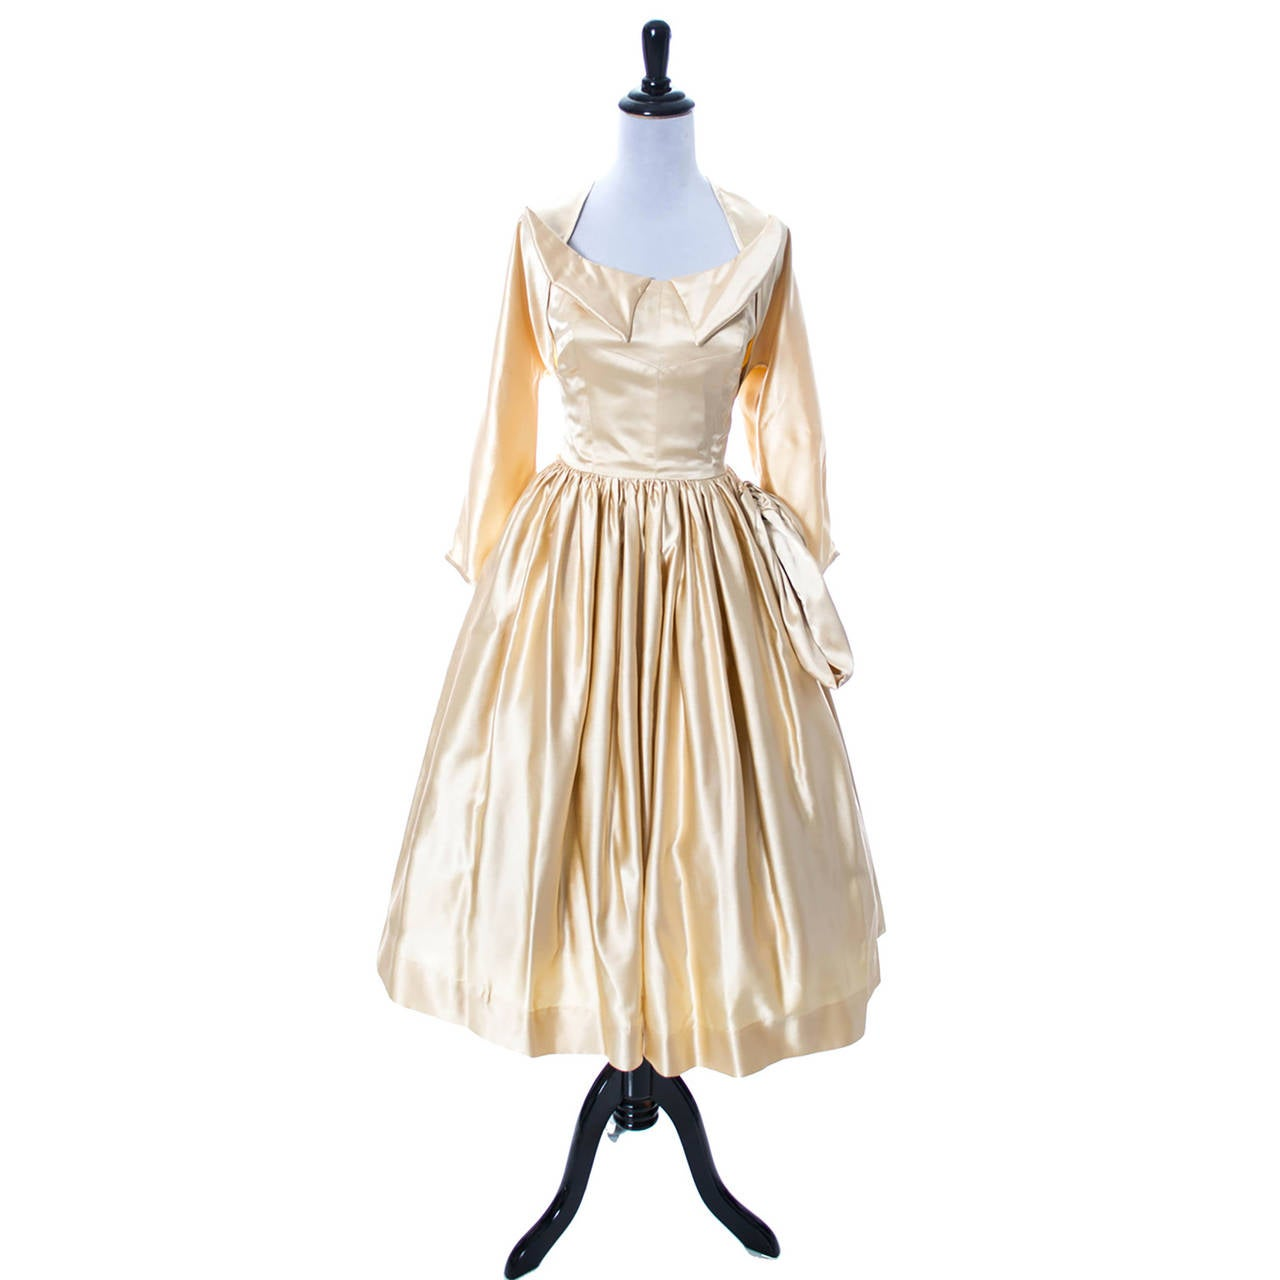 1950s Vintage Dress Champagne Satin Winged Bust Wedding Peg Powers Original 2